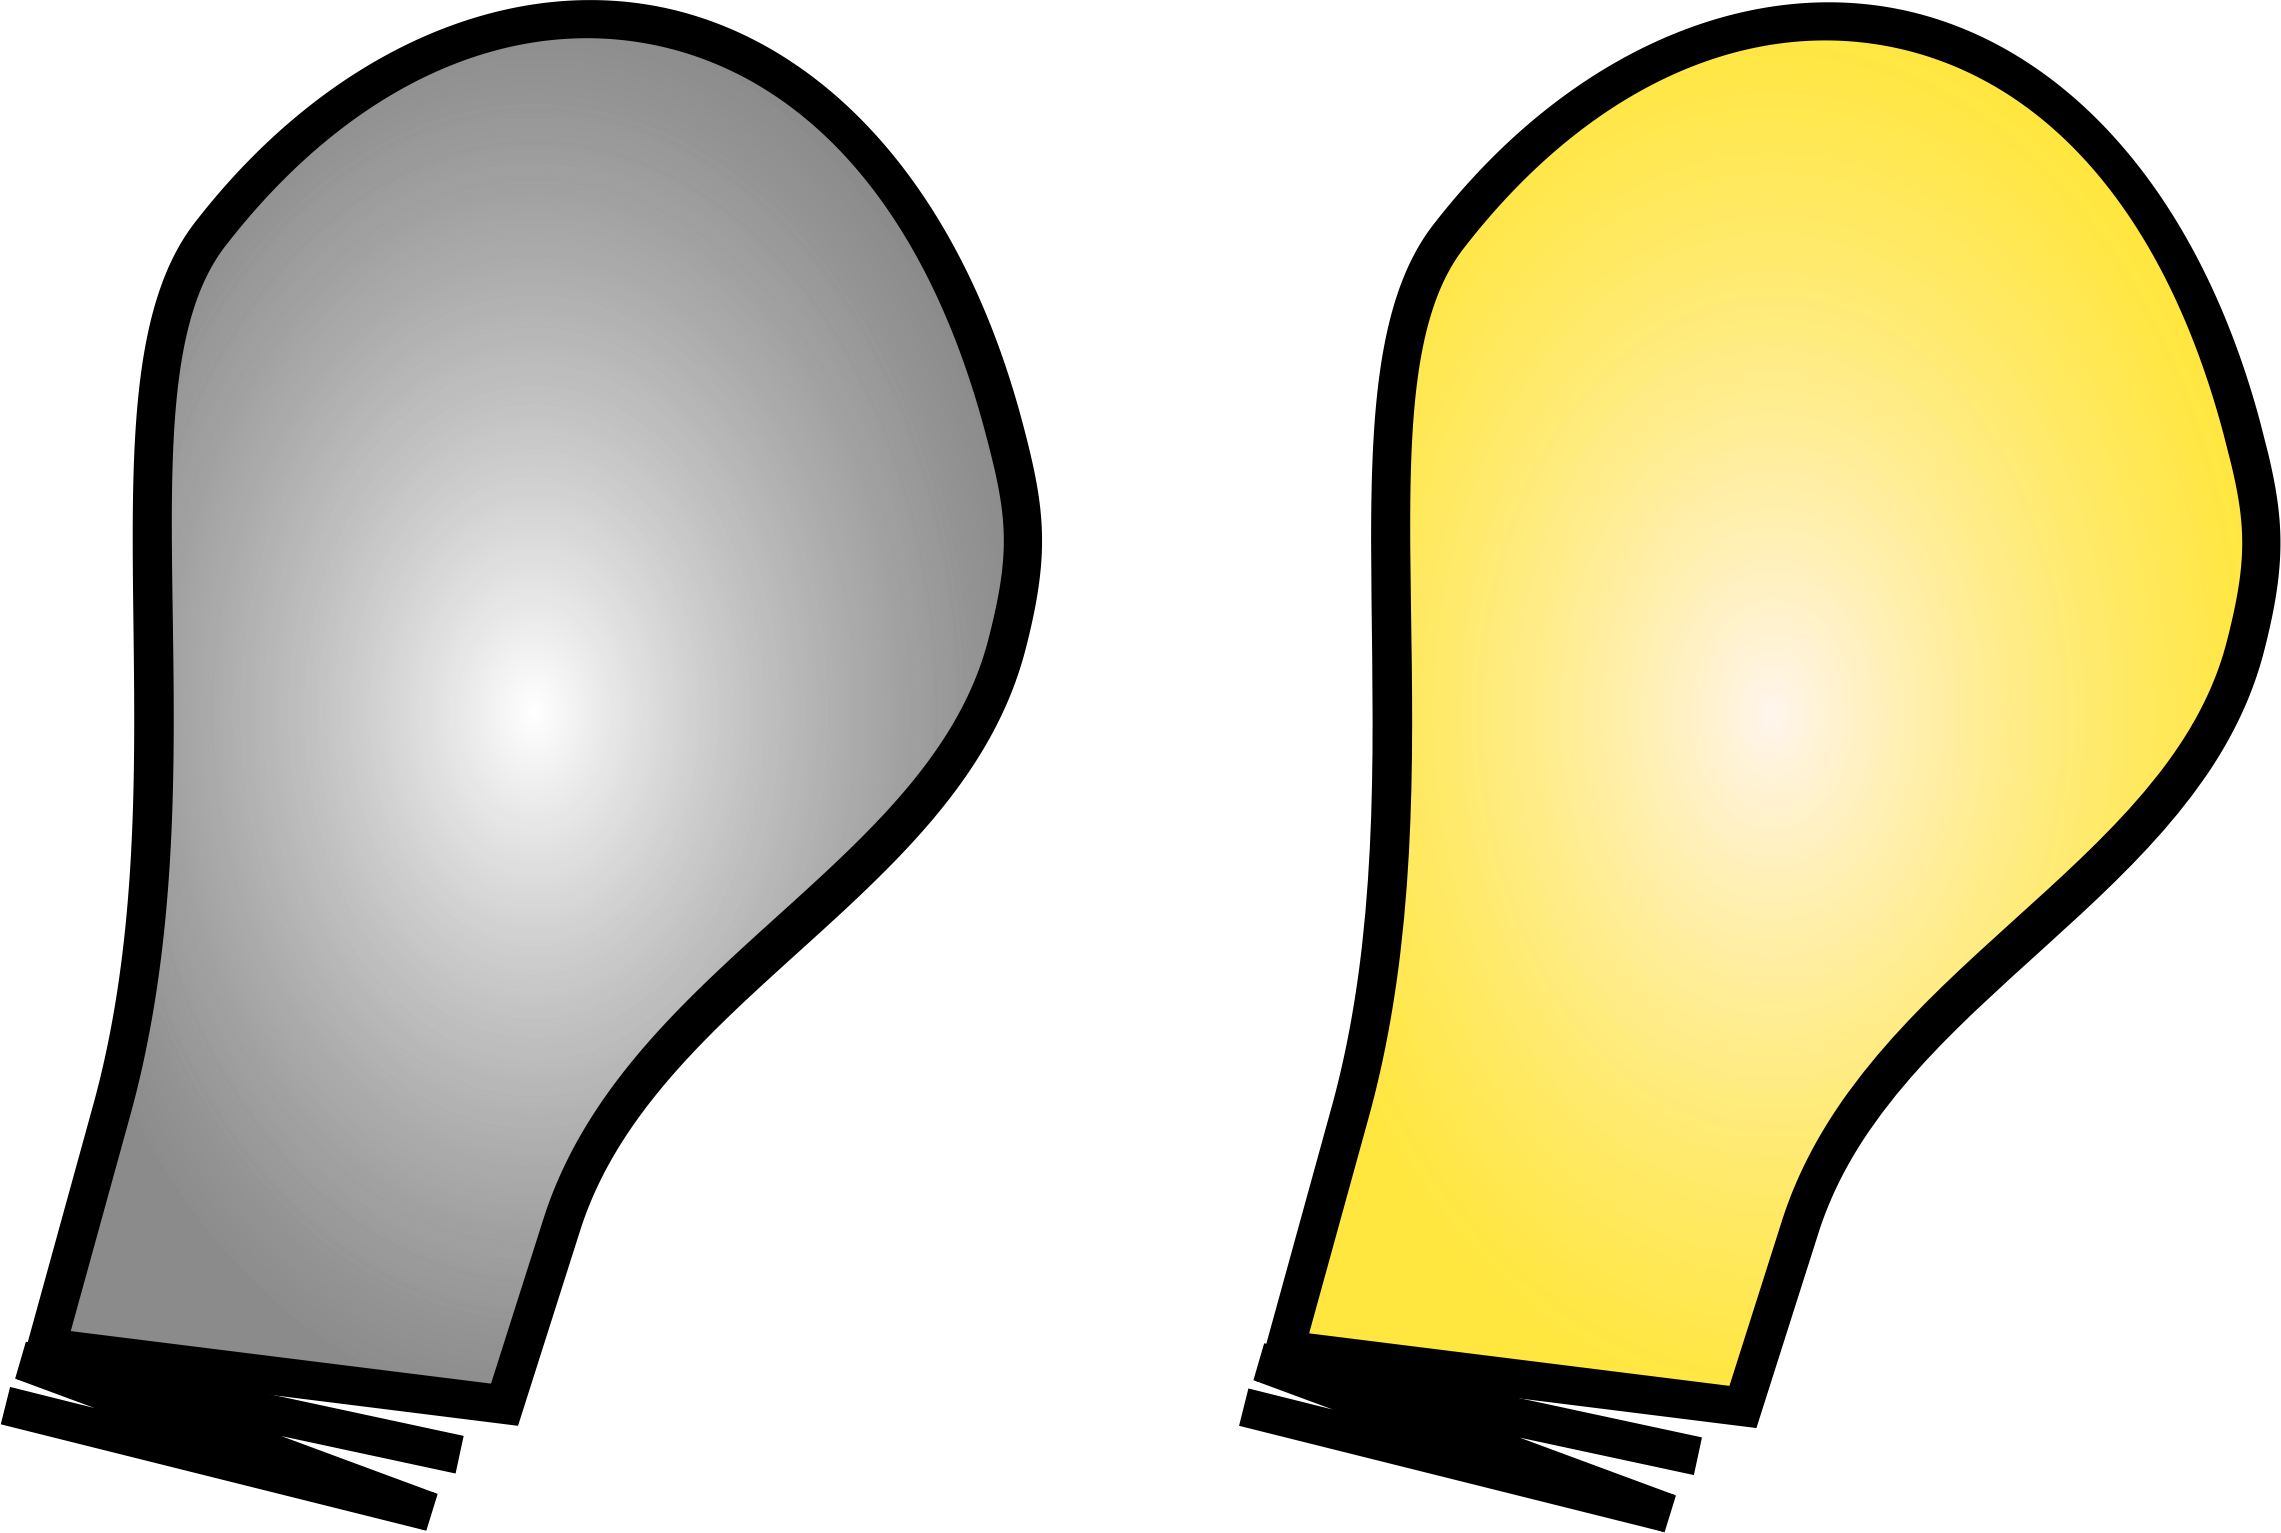 Light bulb on off png. Simple icons free and